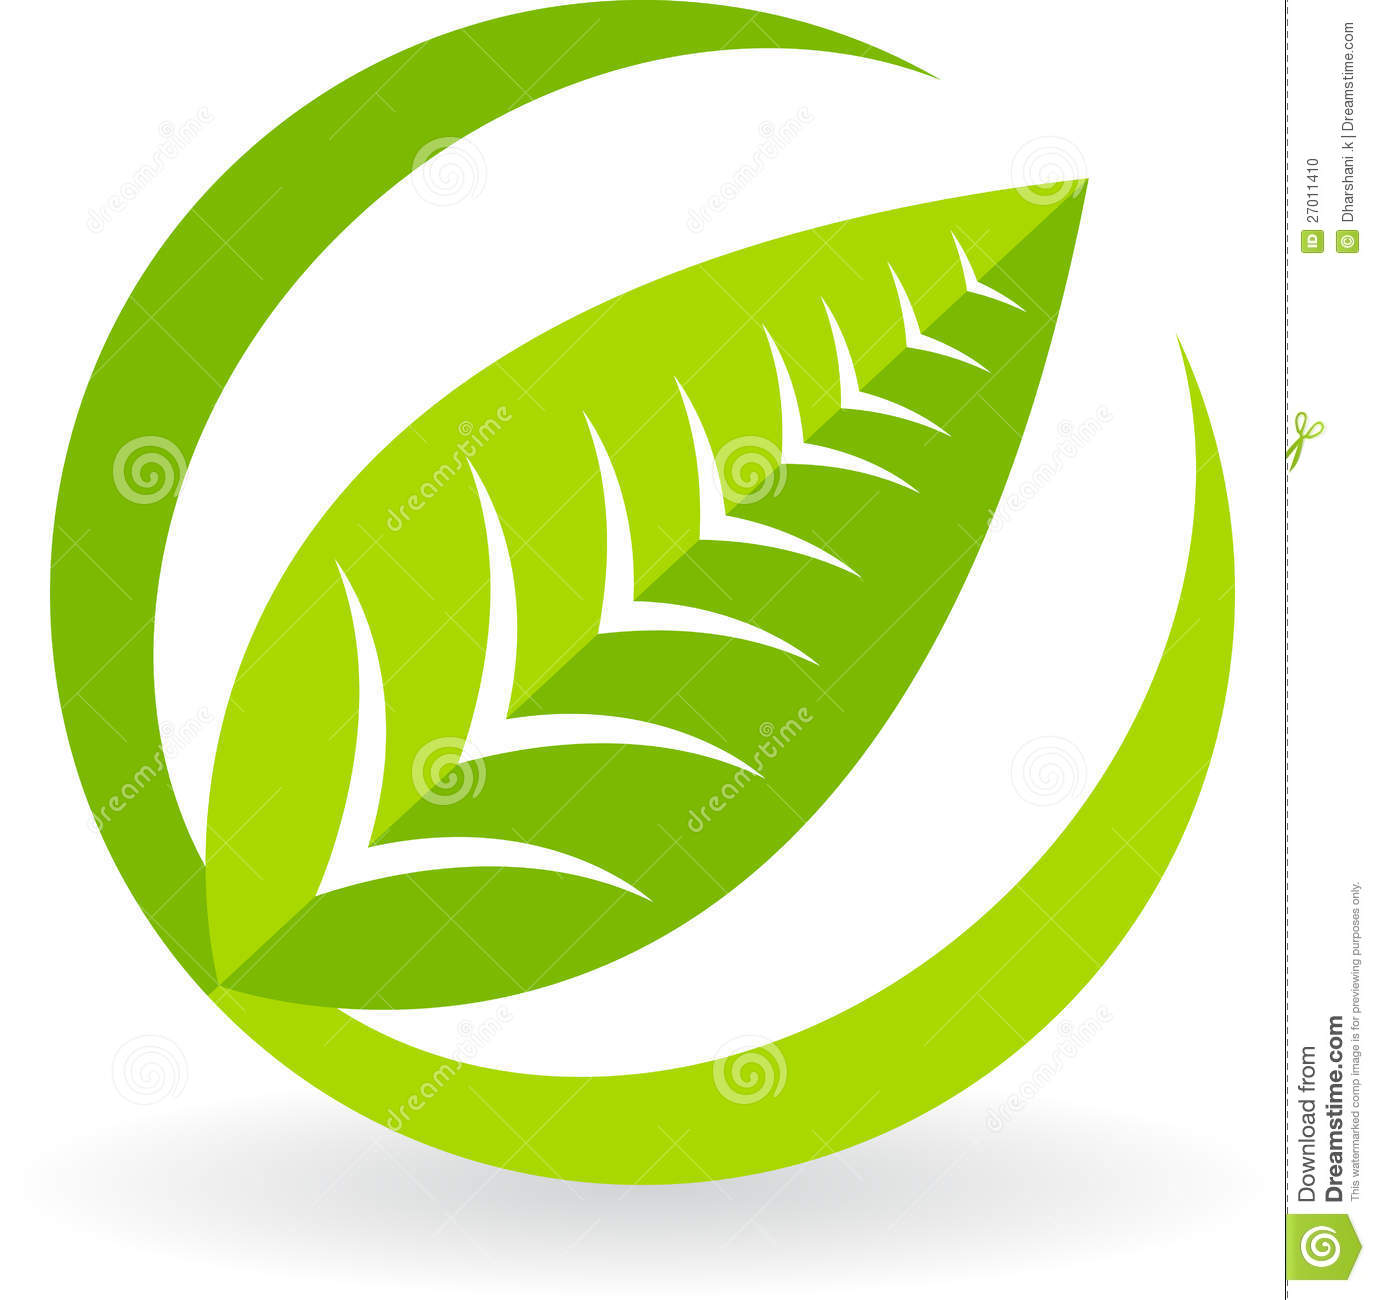 Illustration art of a leaf logo with white background.